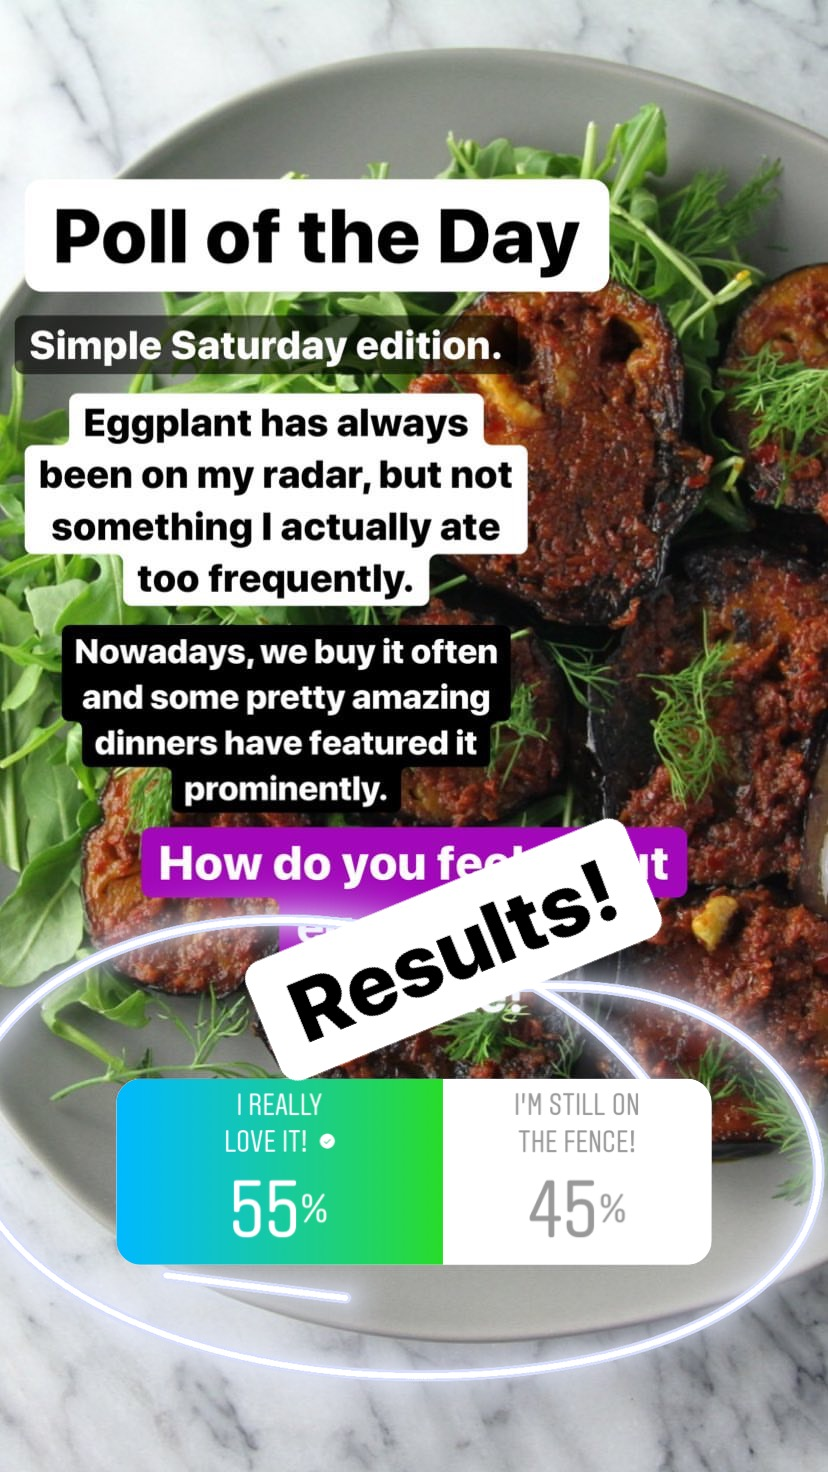 Almost split on this one! I'm glad the love it group pulled ahead though since I really think eggplant is making a cool comeback. And despite not really knowing too much about it until recently, I really appreciate how versatile it can be. We love it as eggplant parm, especially, but are enjoying finding new ways to prepare this fun purple veggie.